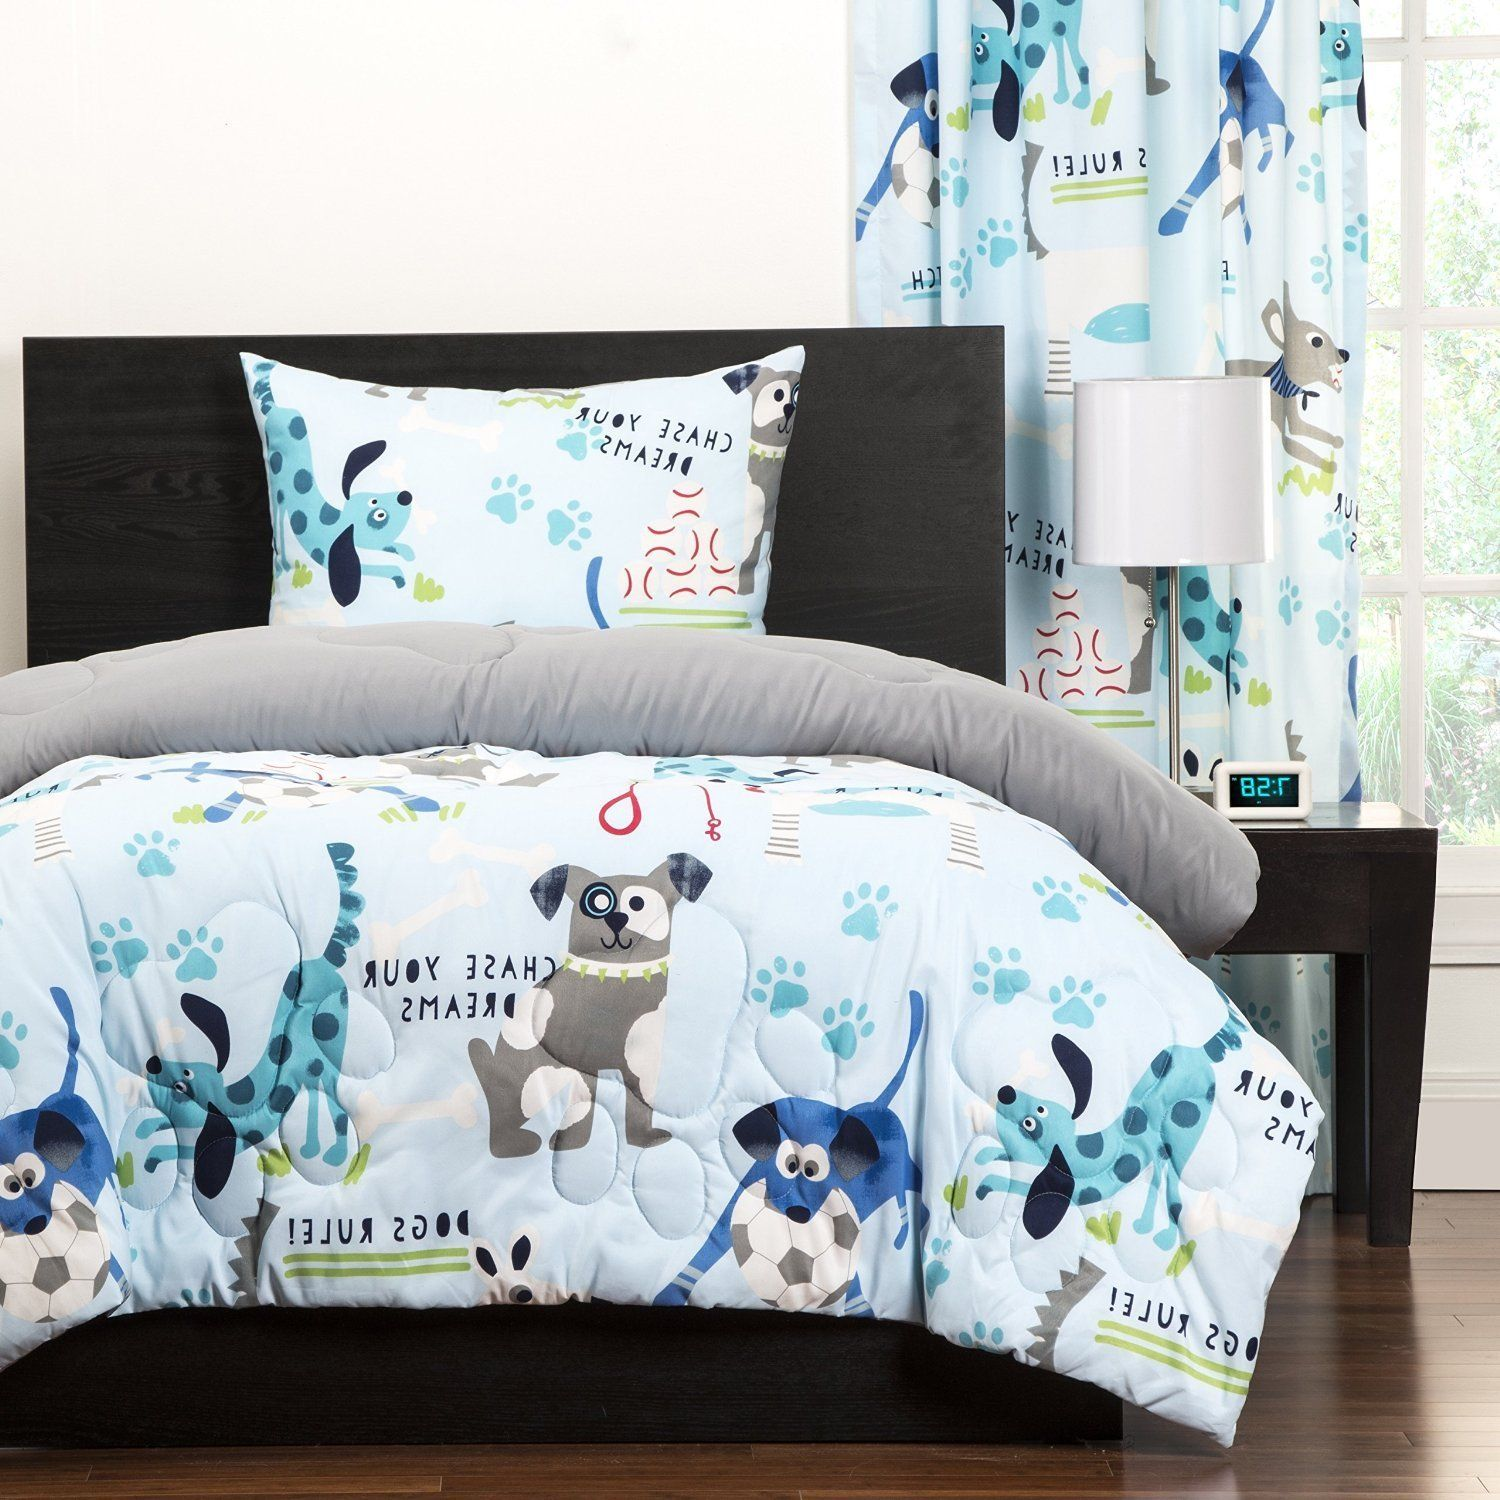 cute source mattress bedroom bed with size comforter bedding king a set sets full